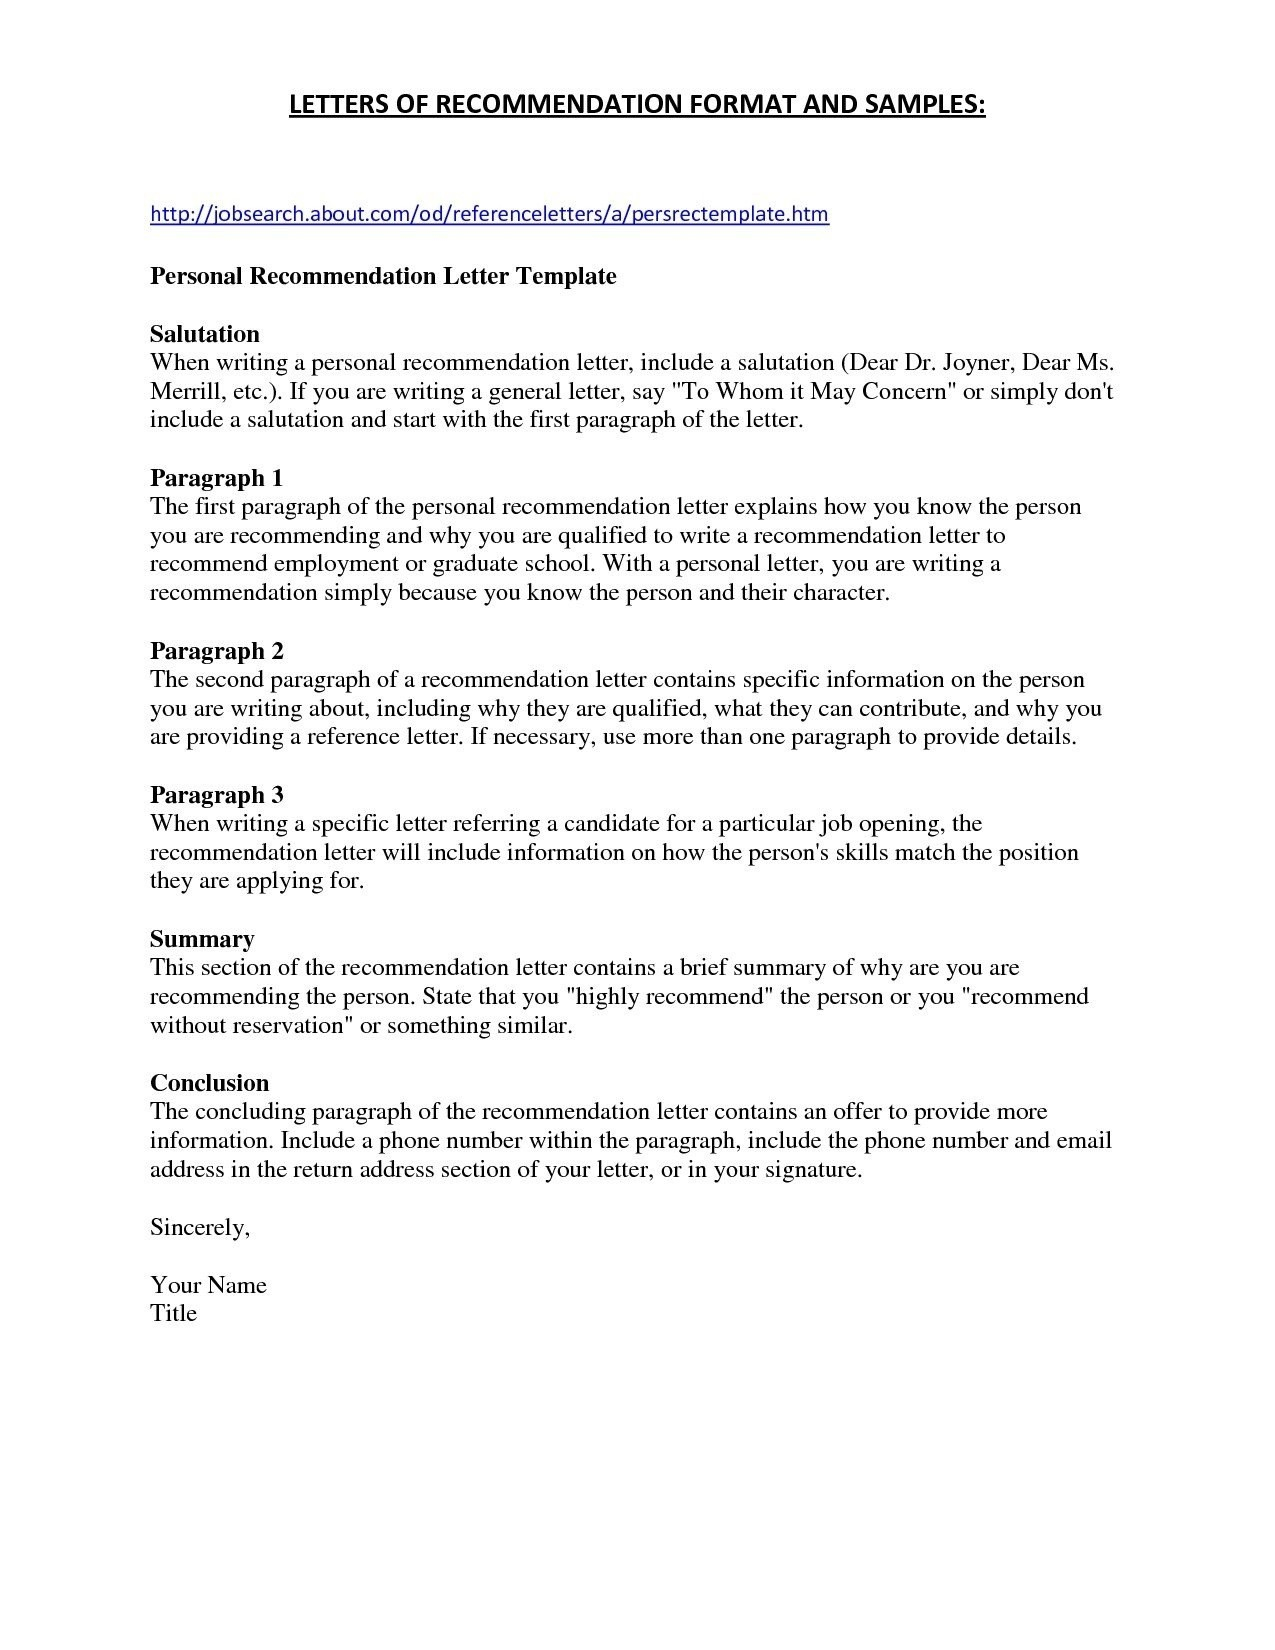 Resume for Letter Of Recommendation Template - Samples Letters Re Mendation for A Job Best Sample Retail